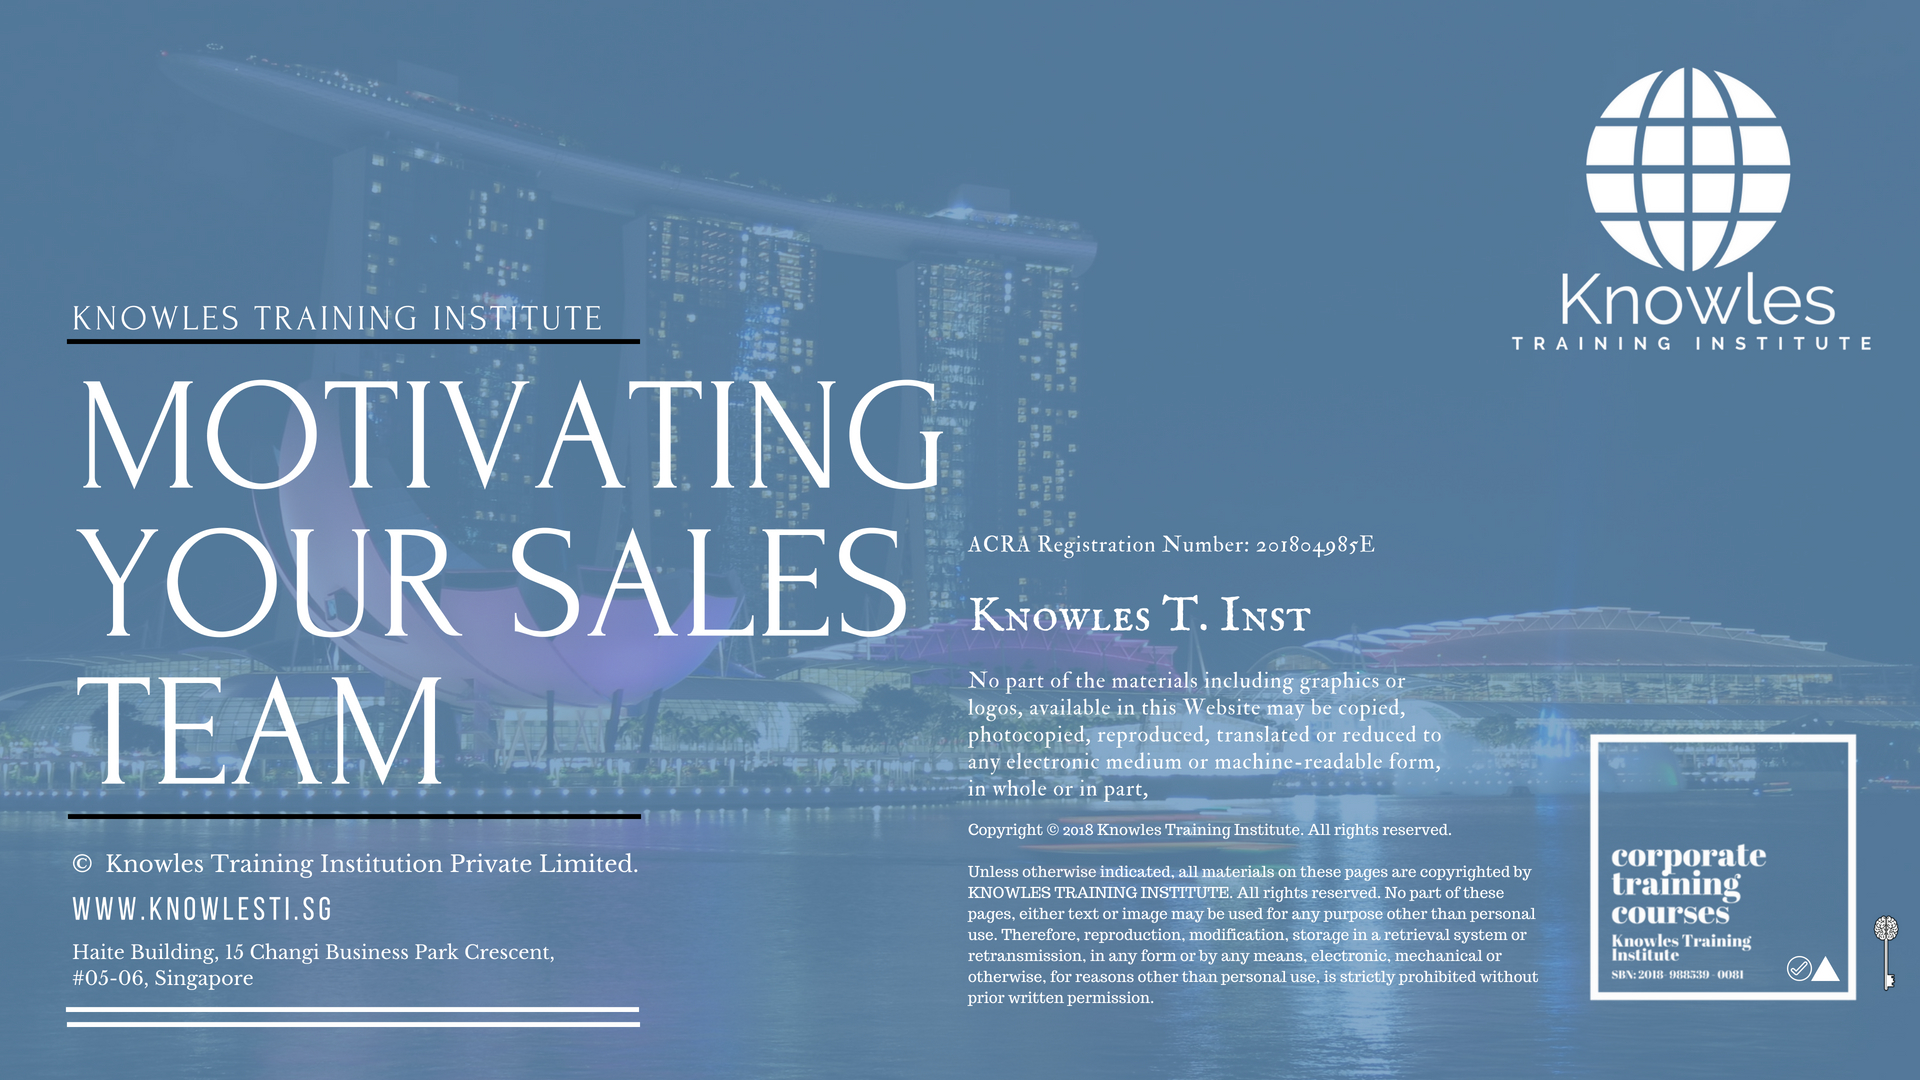 Motivating Your Sales Team Course